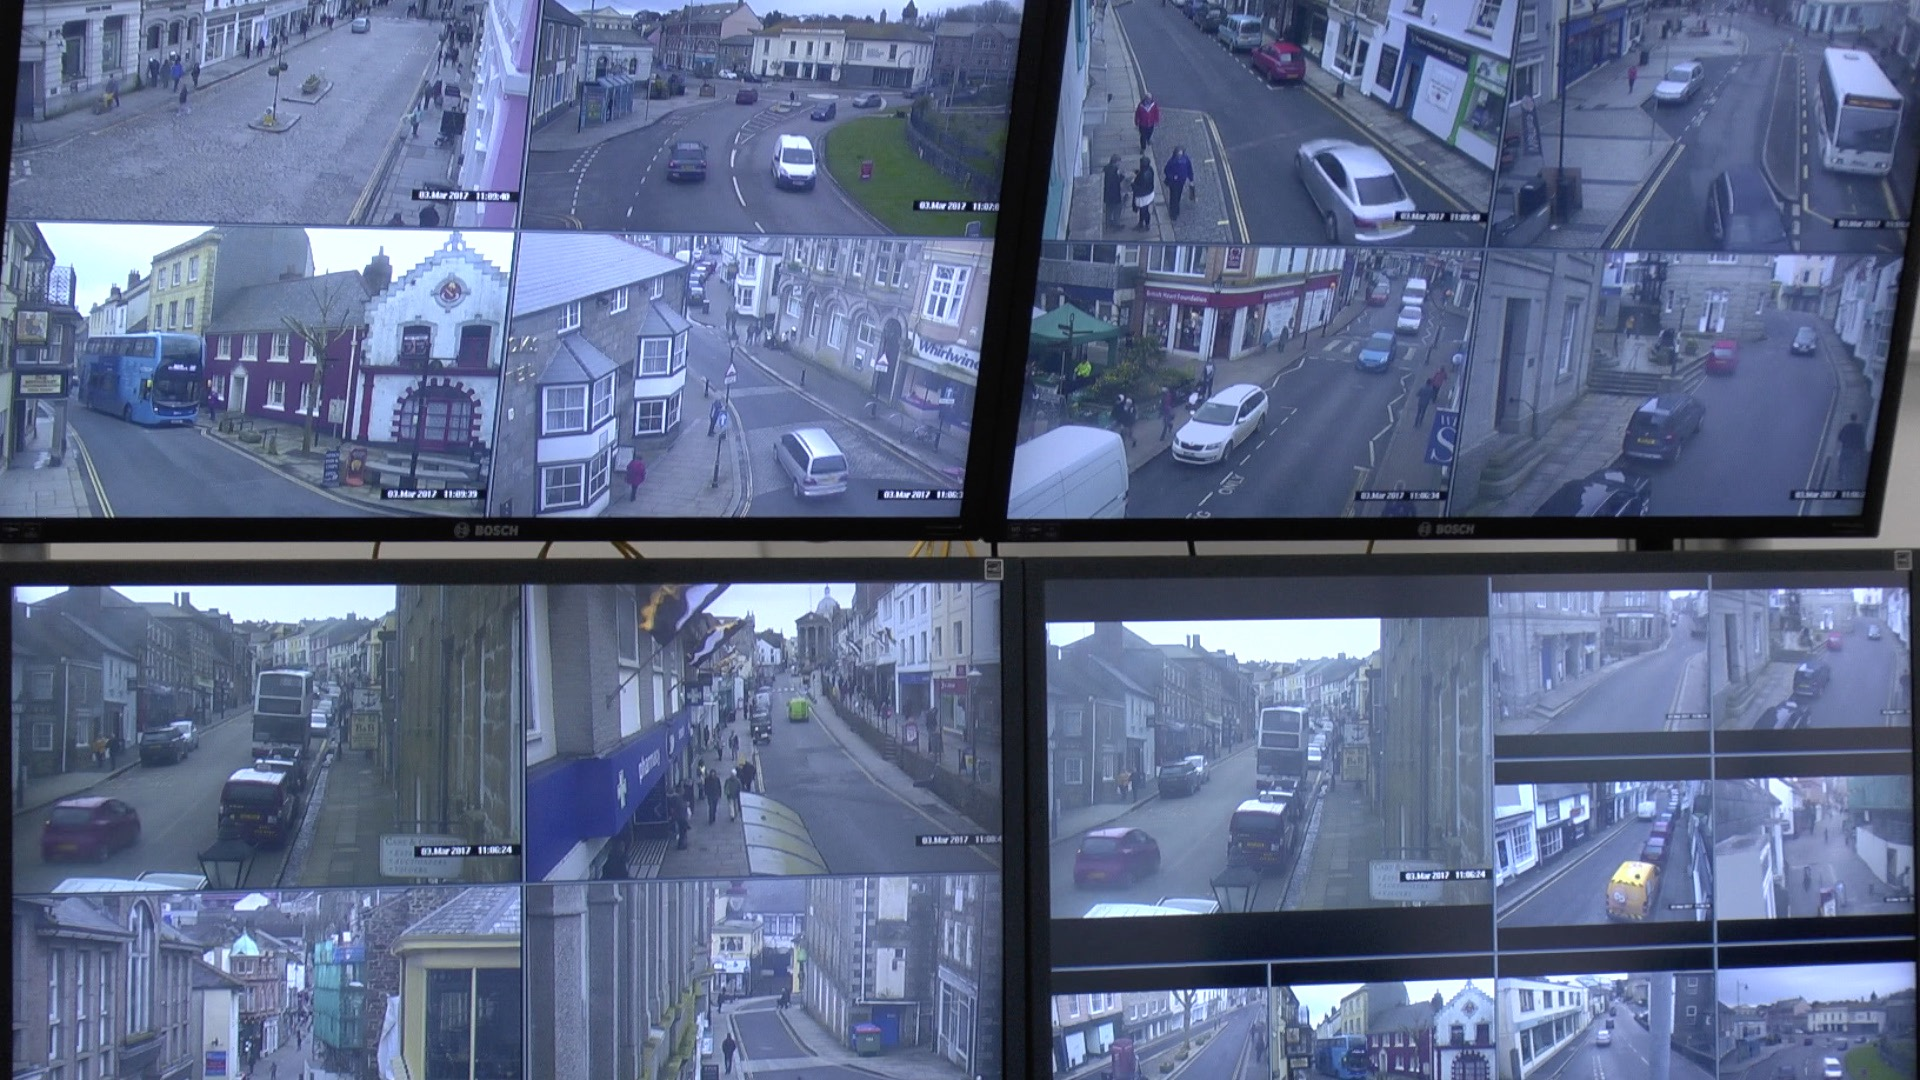 Police Commissioner pledges extra funding for CCTV and monitoring hubs in Devon and Cornwall